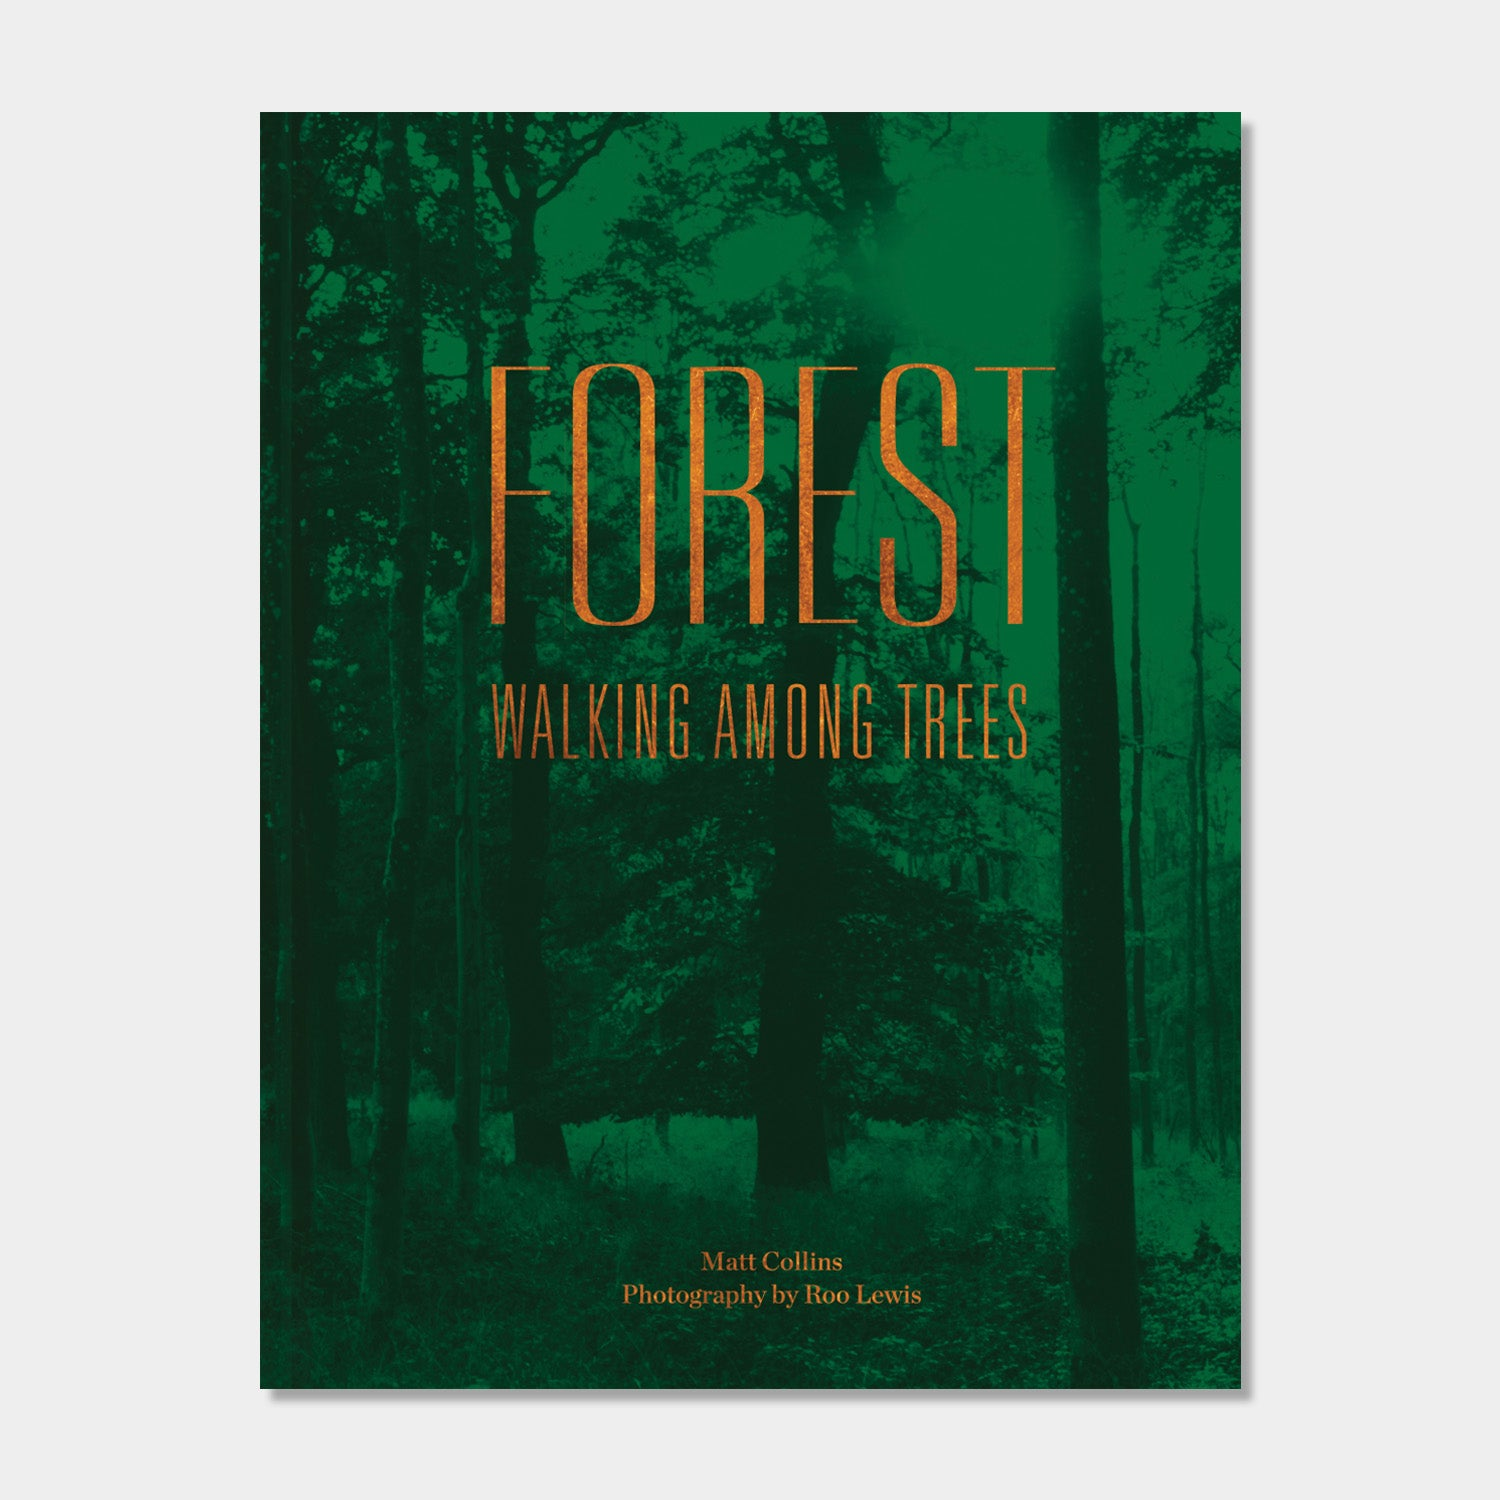 Forest - Walking Among Trees